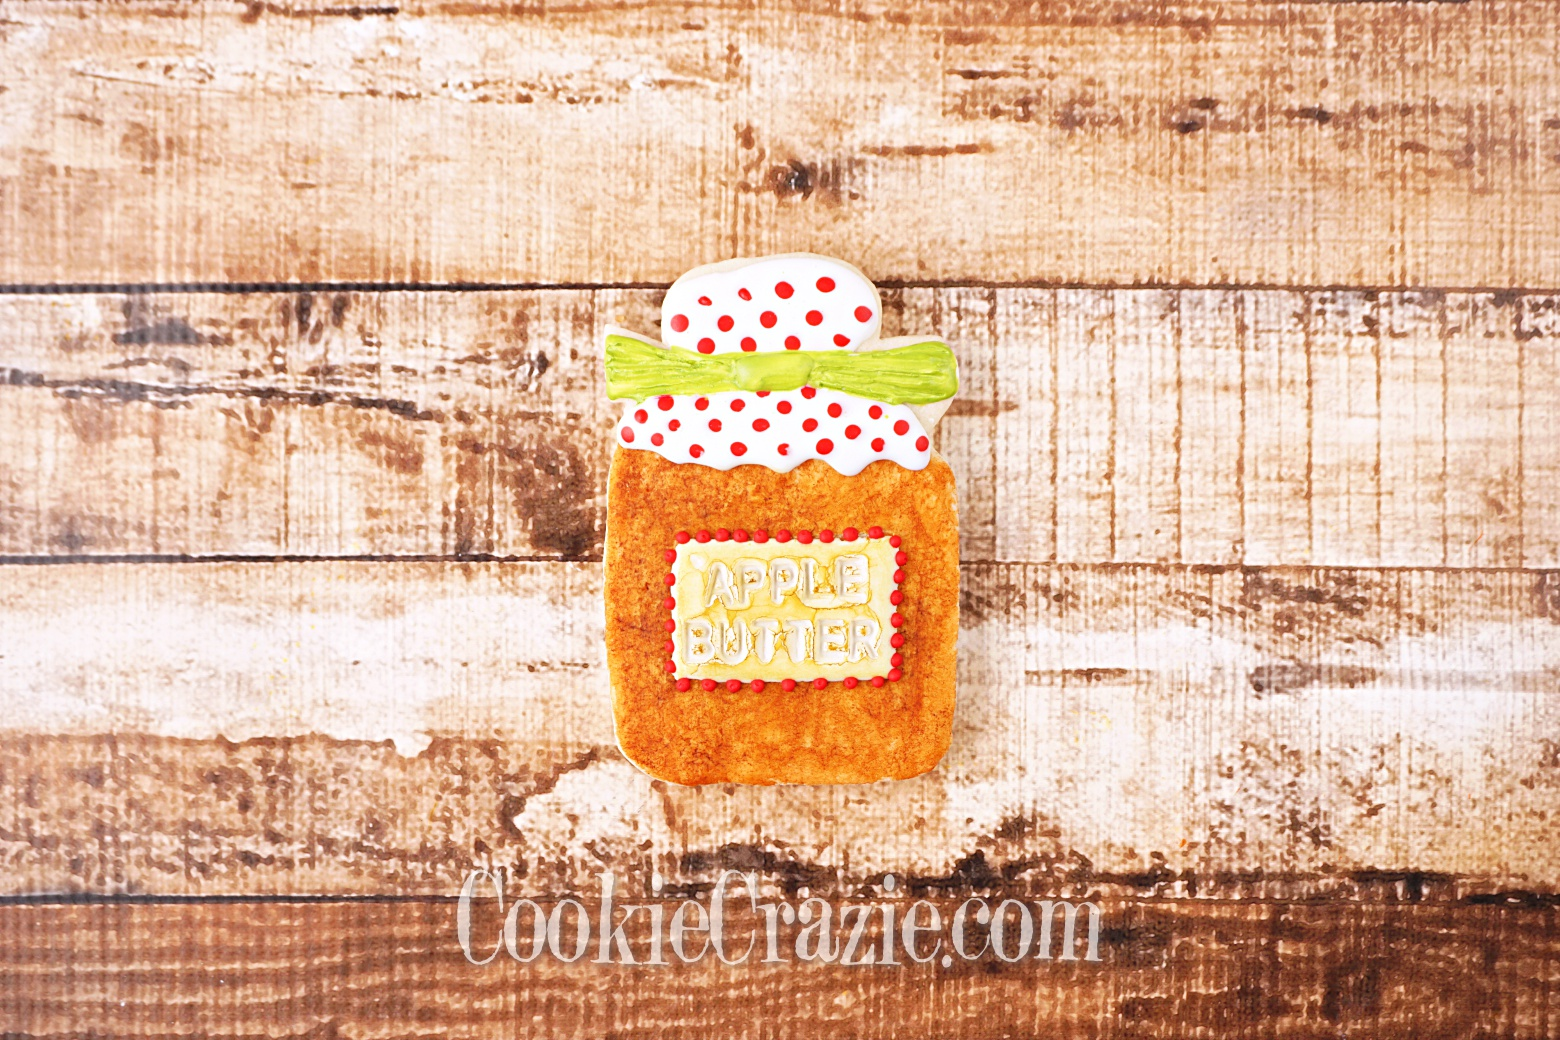 Apple Butter Jar Decorated Sugar Cookie YouTube video  HERE